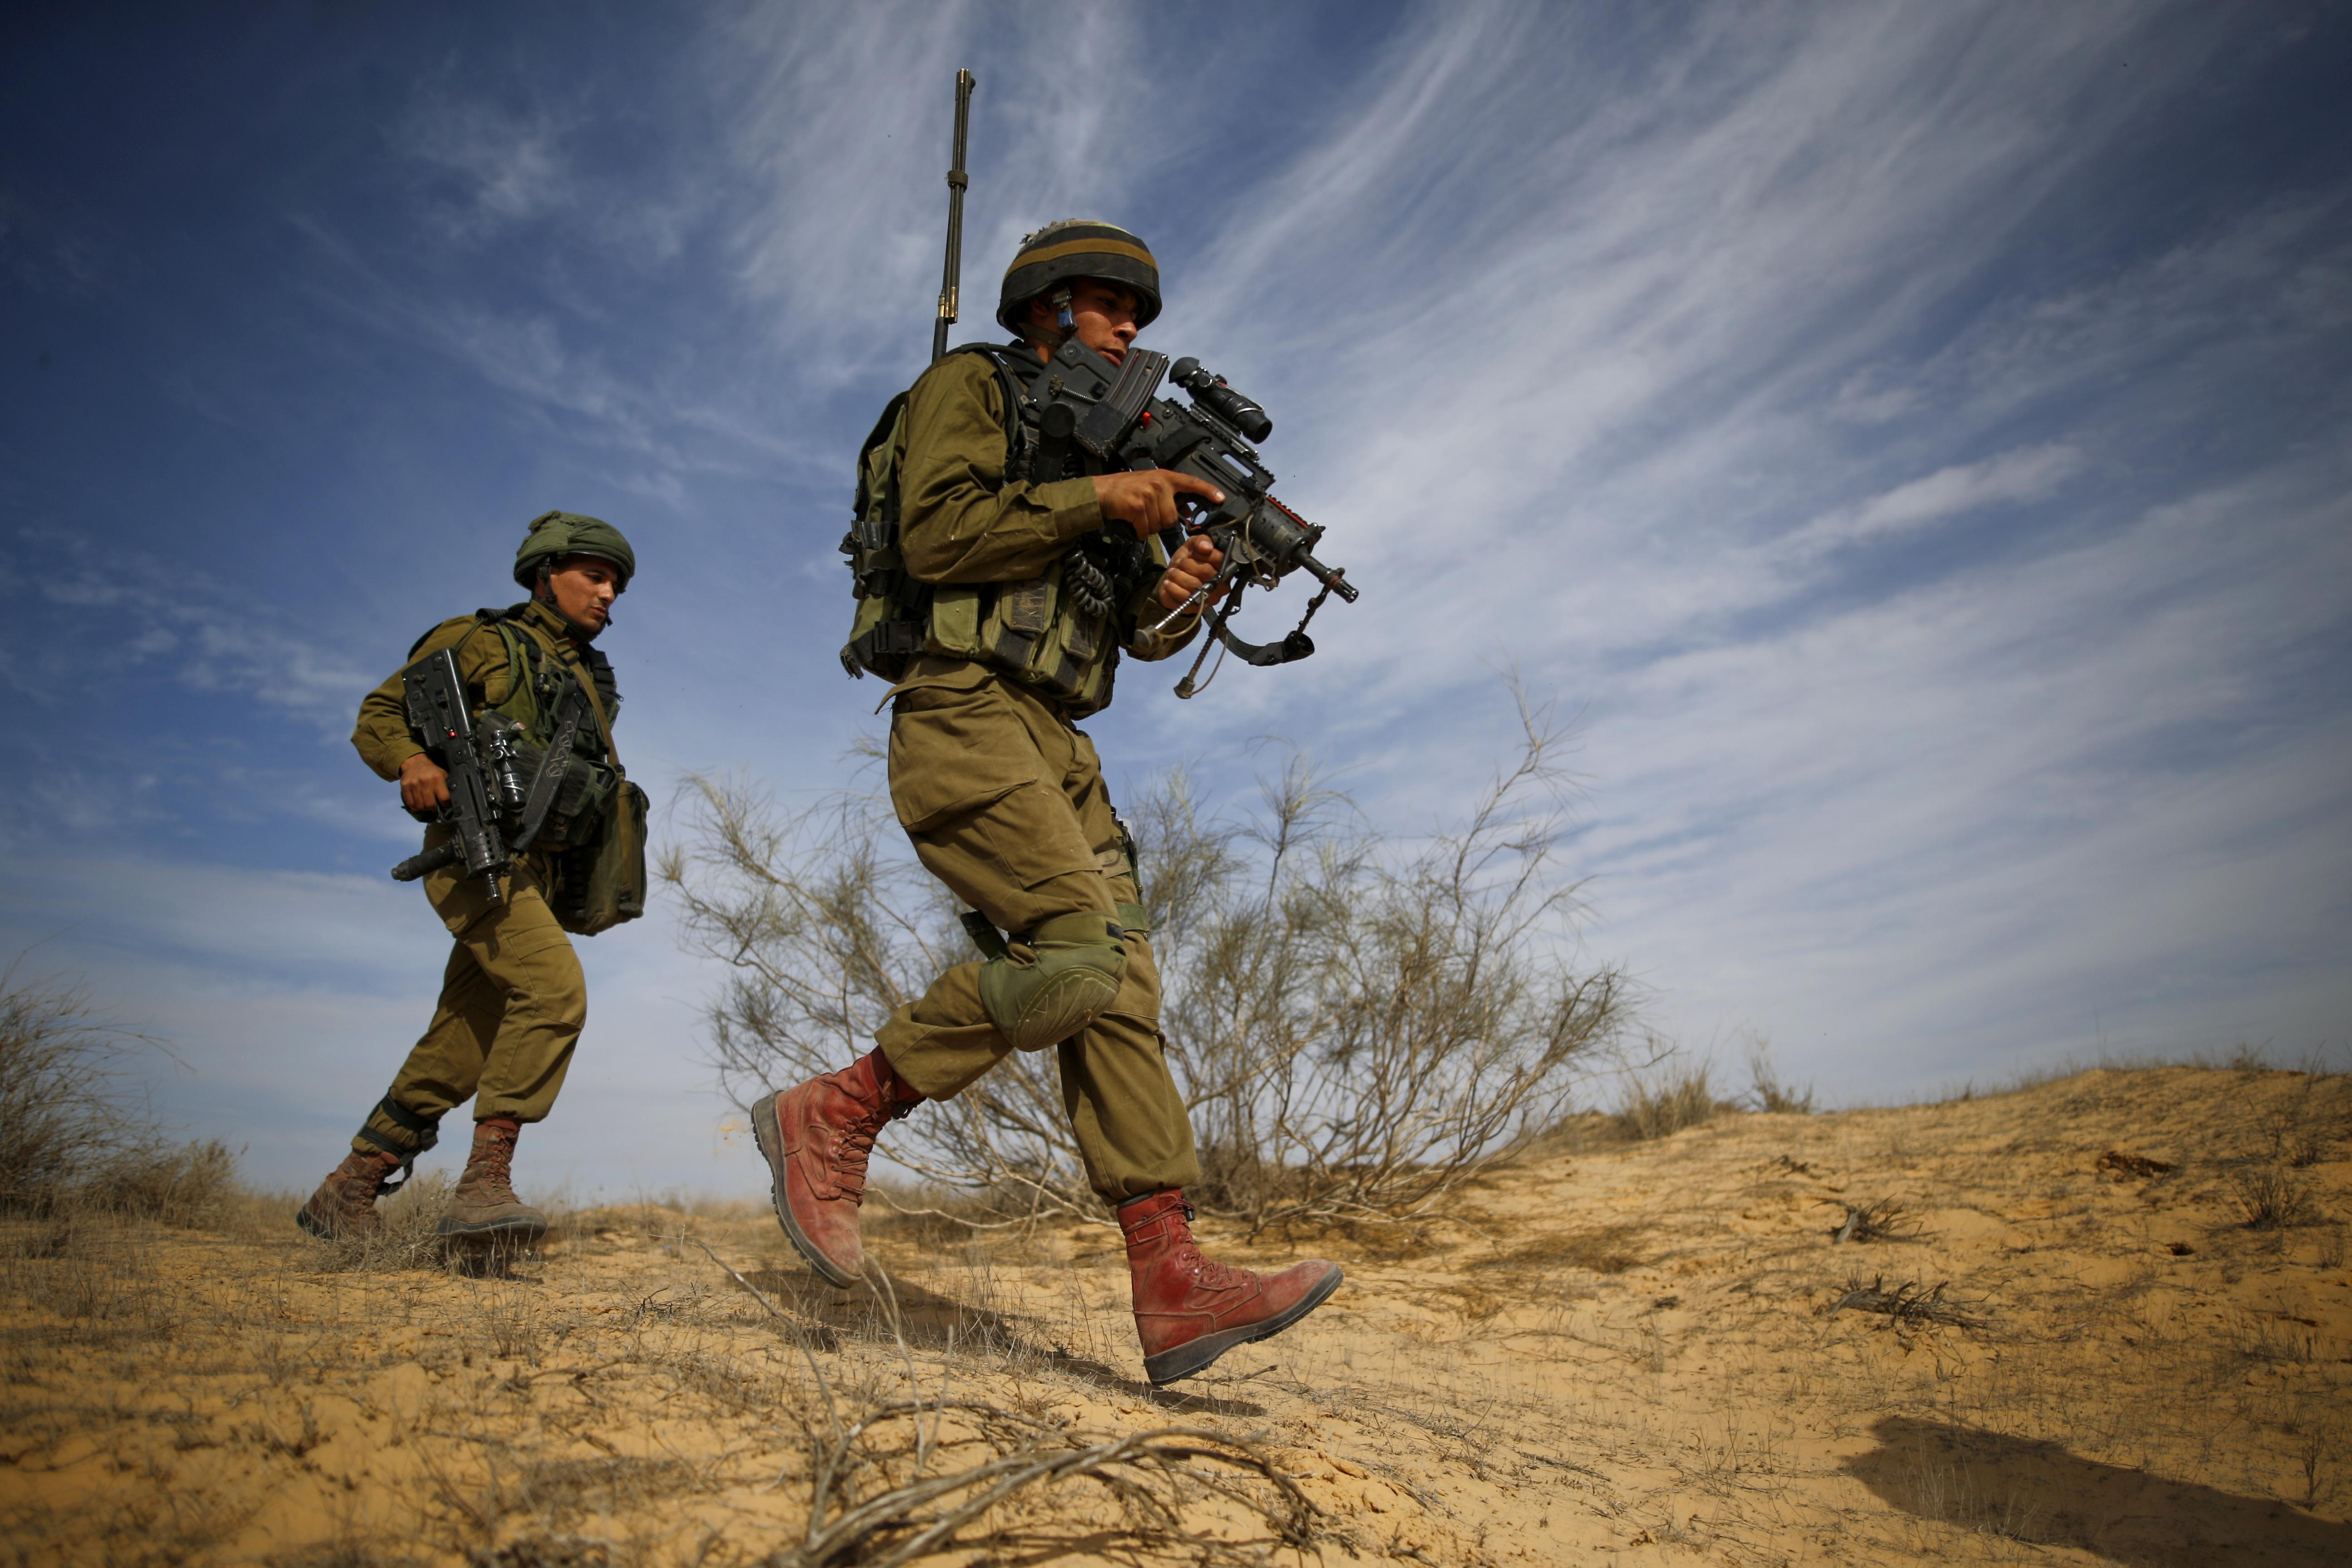 Israeli Troops Allegedly Using West Bank Children As Human Shields